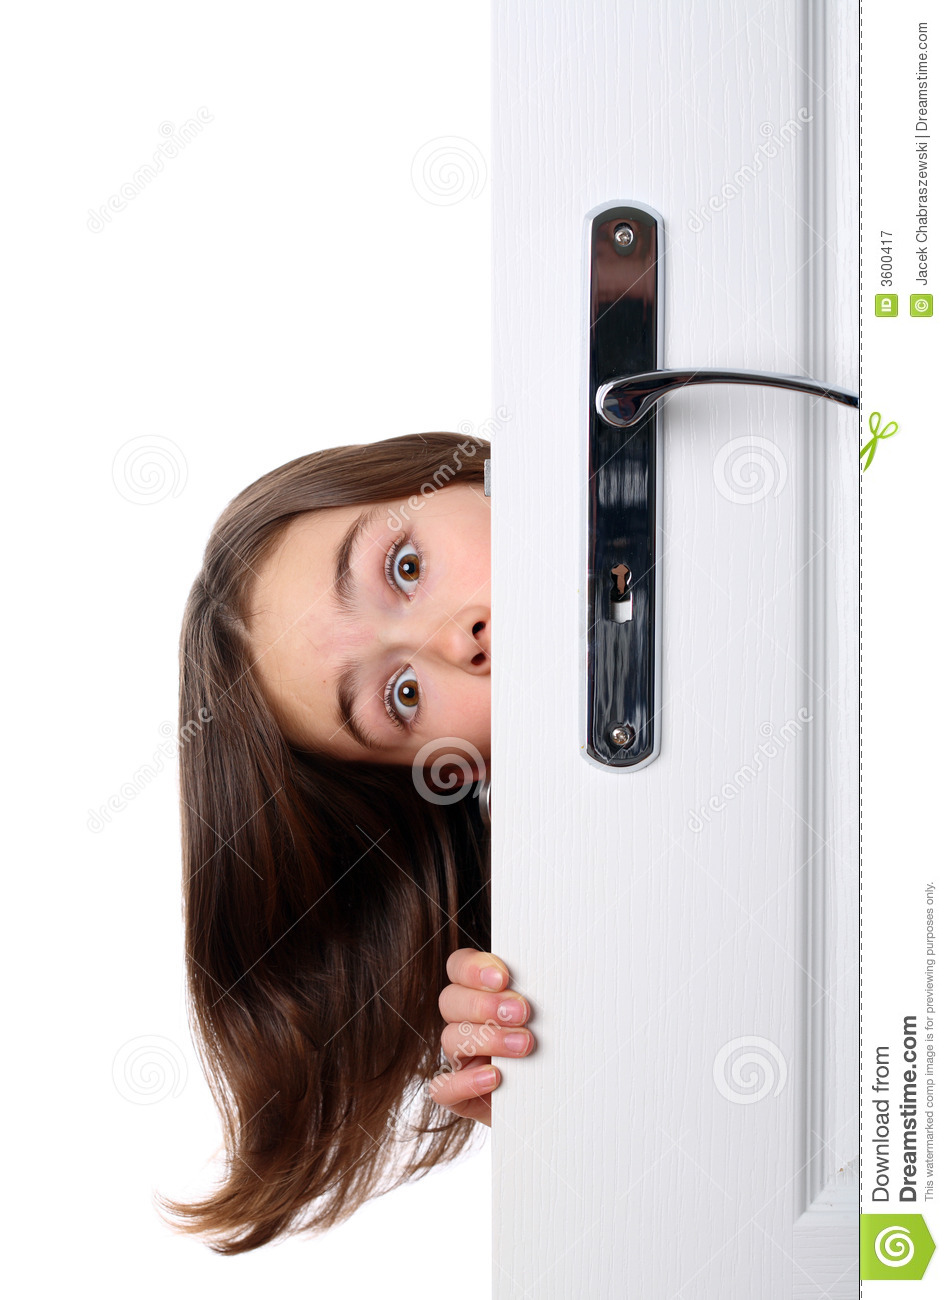 Girl Behind The Door Royalty Free Stock Photography - Image: 3600417